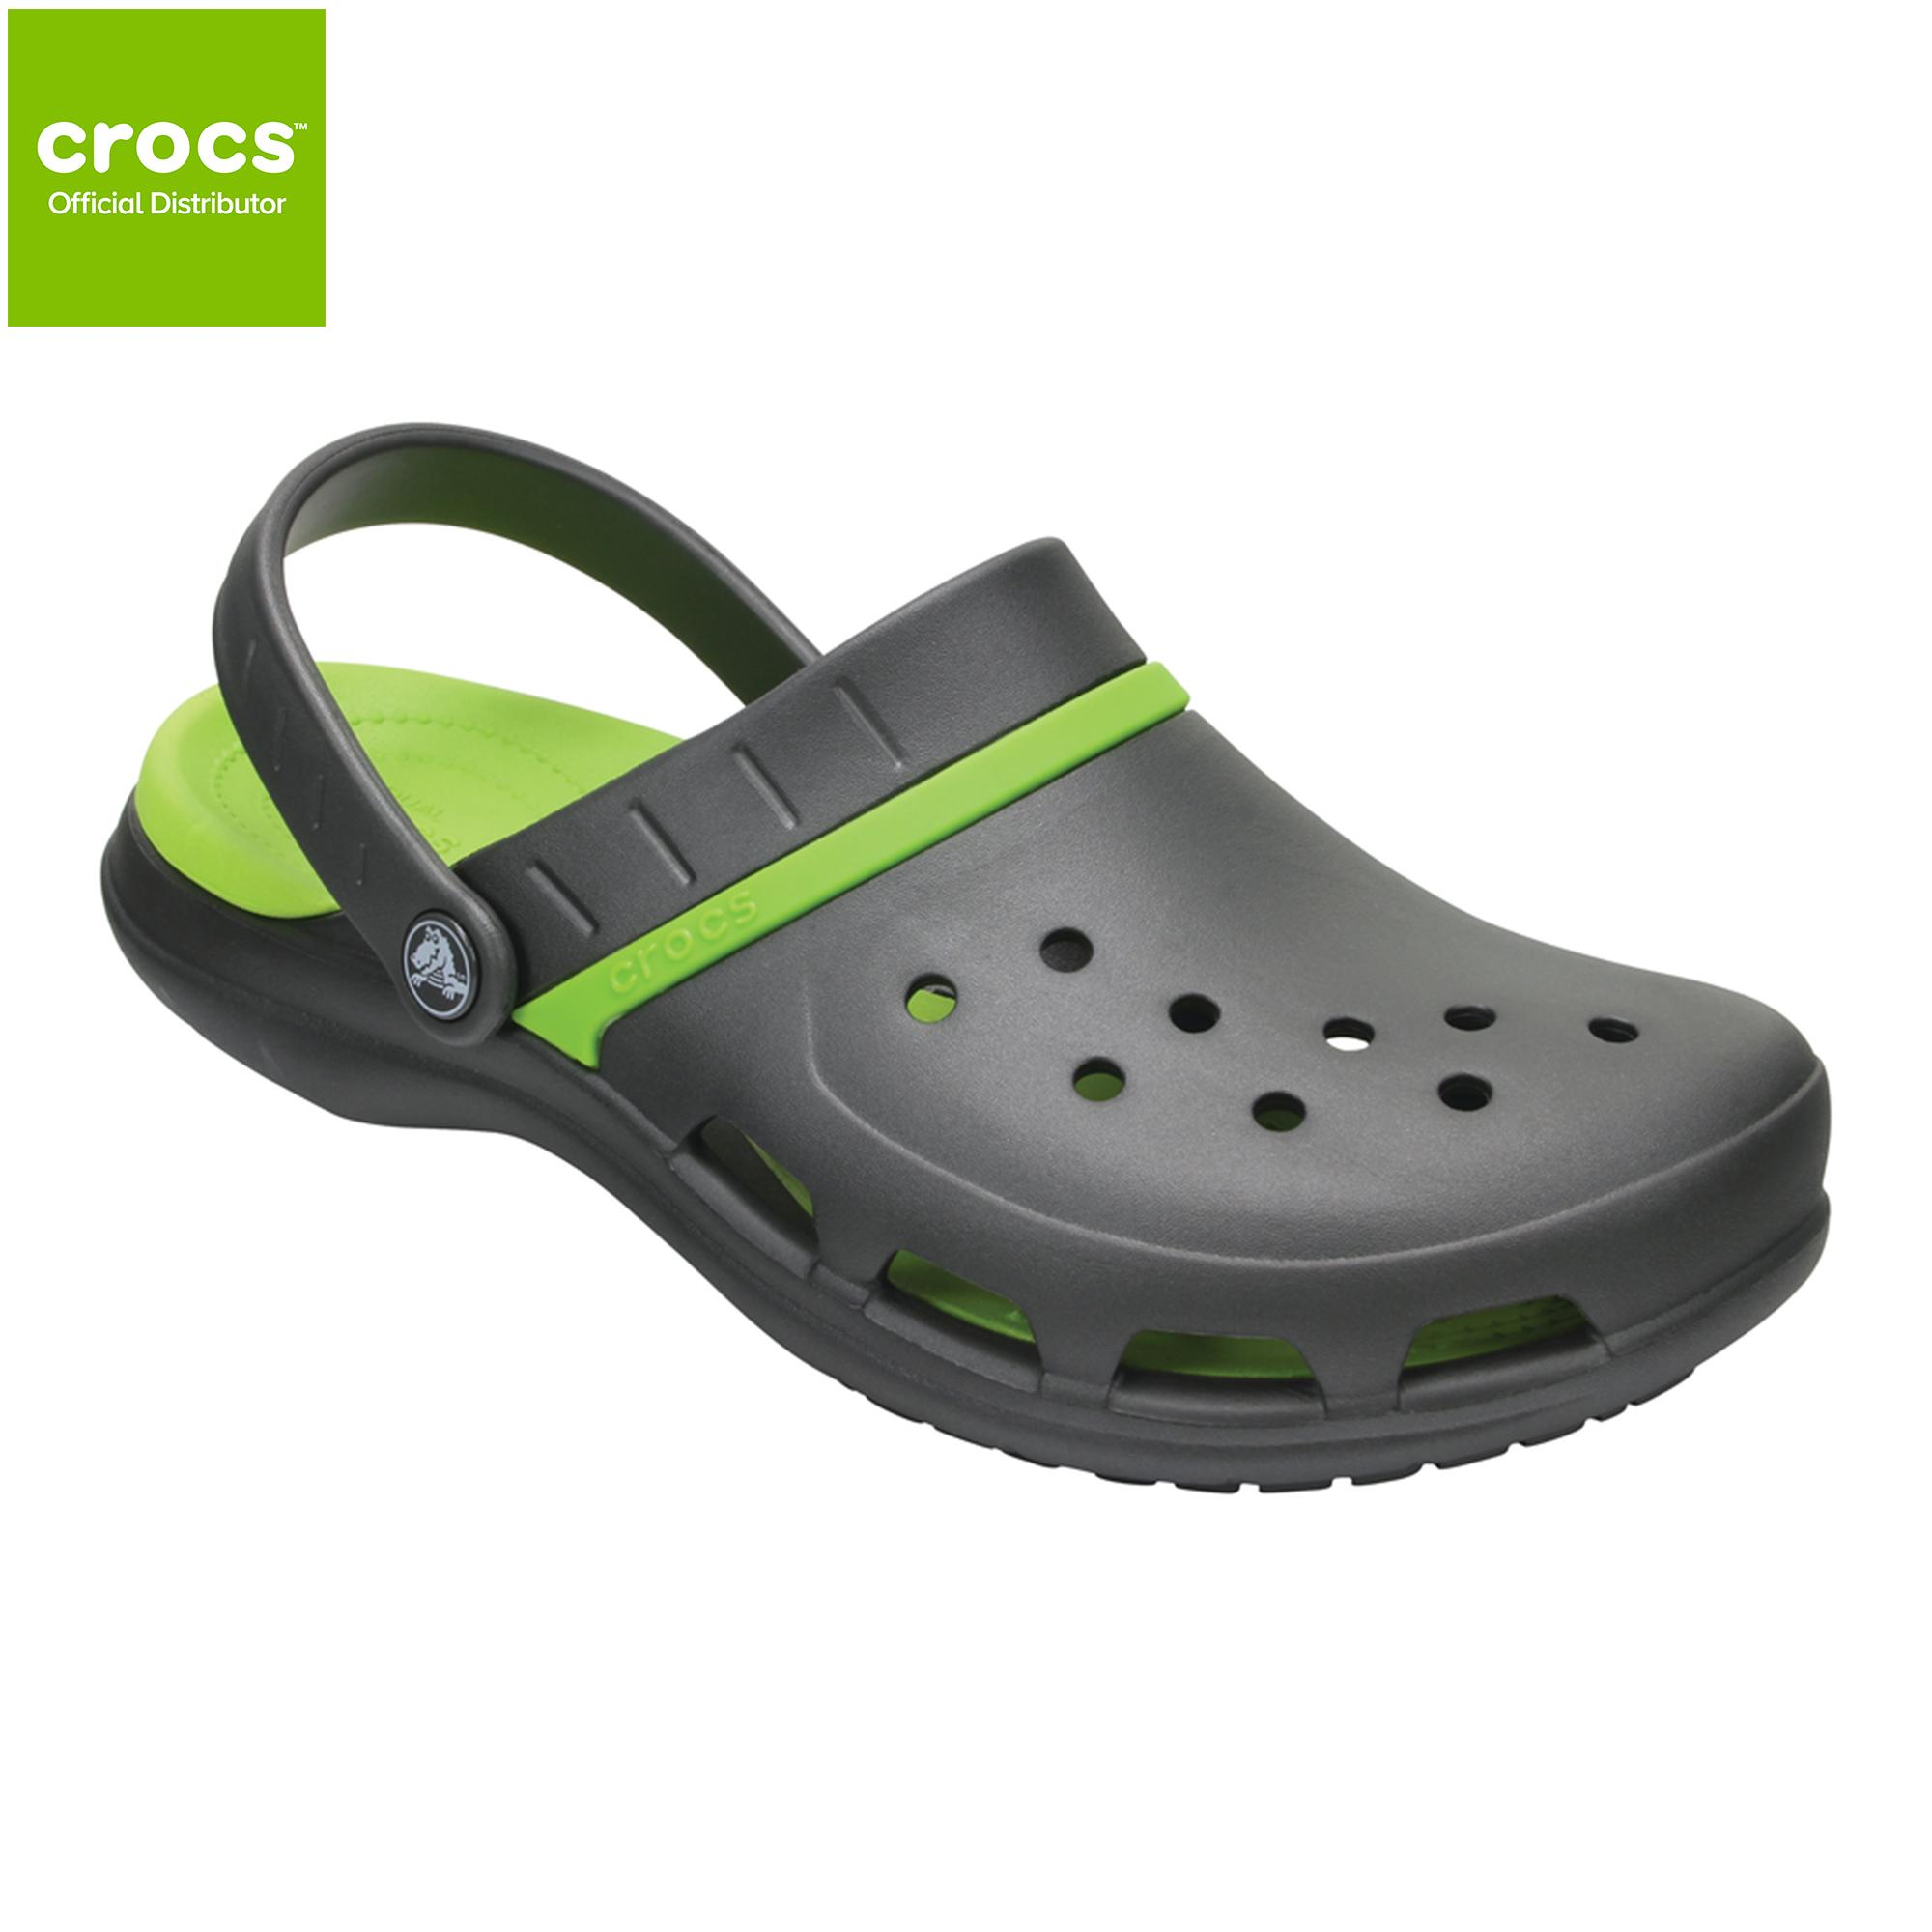 88e2d3df4f36 Crocs Philippines  Crocs price list - Crocs Flats